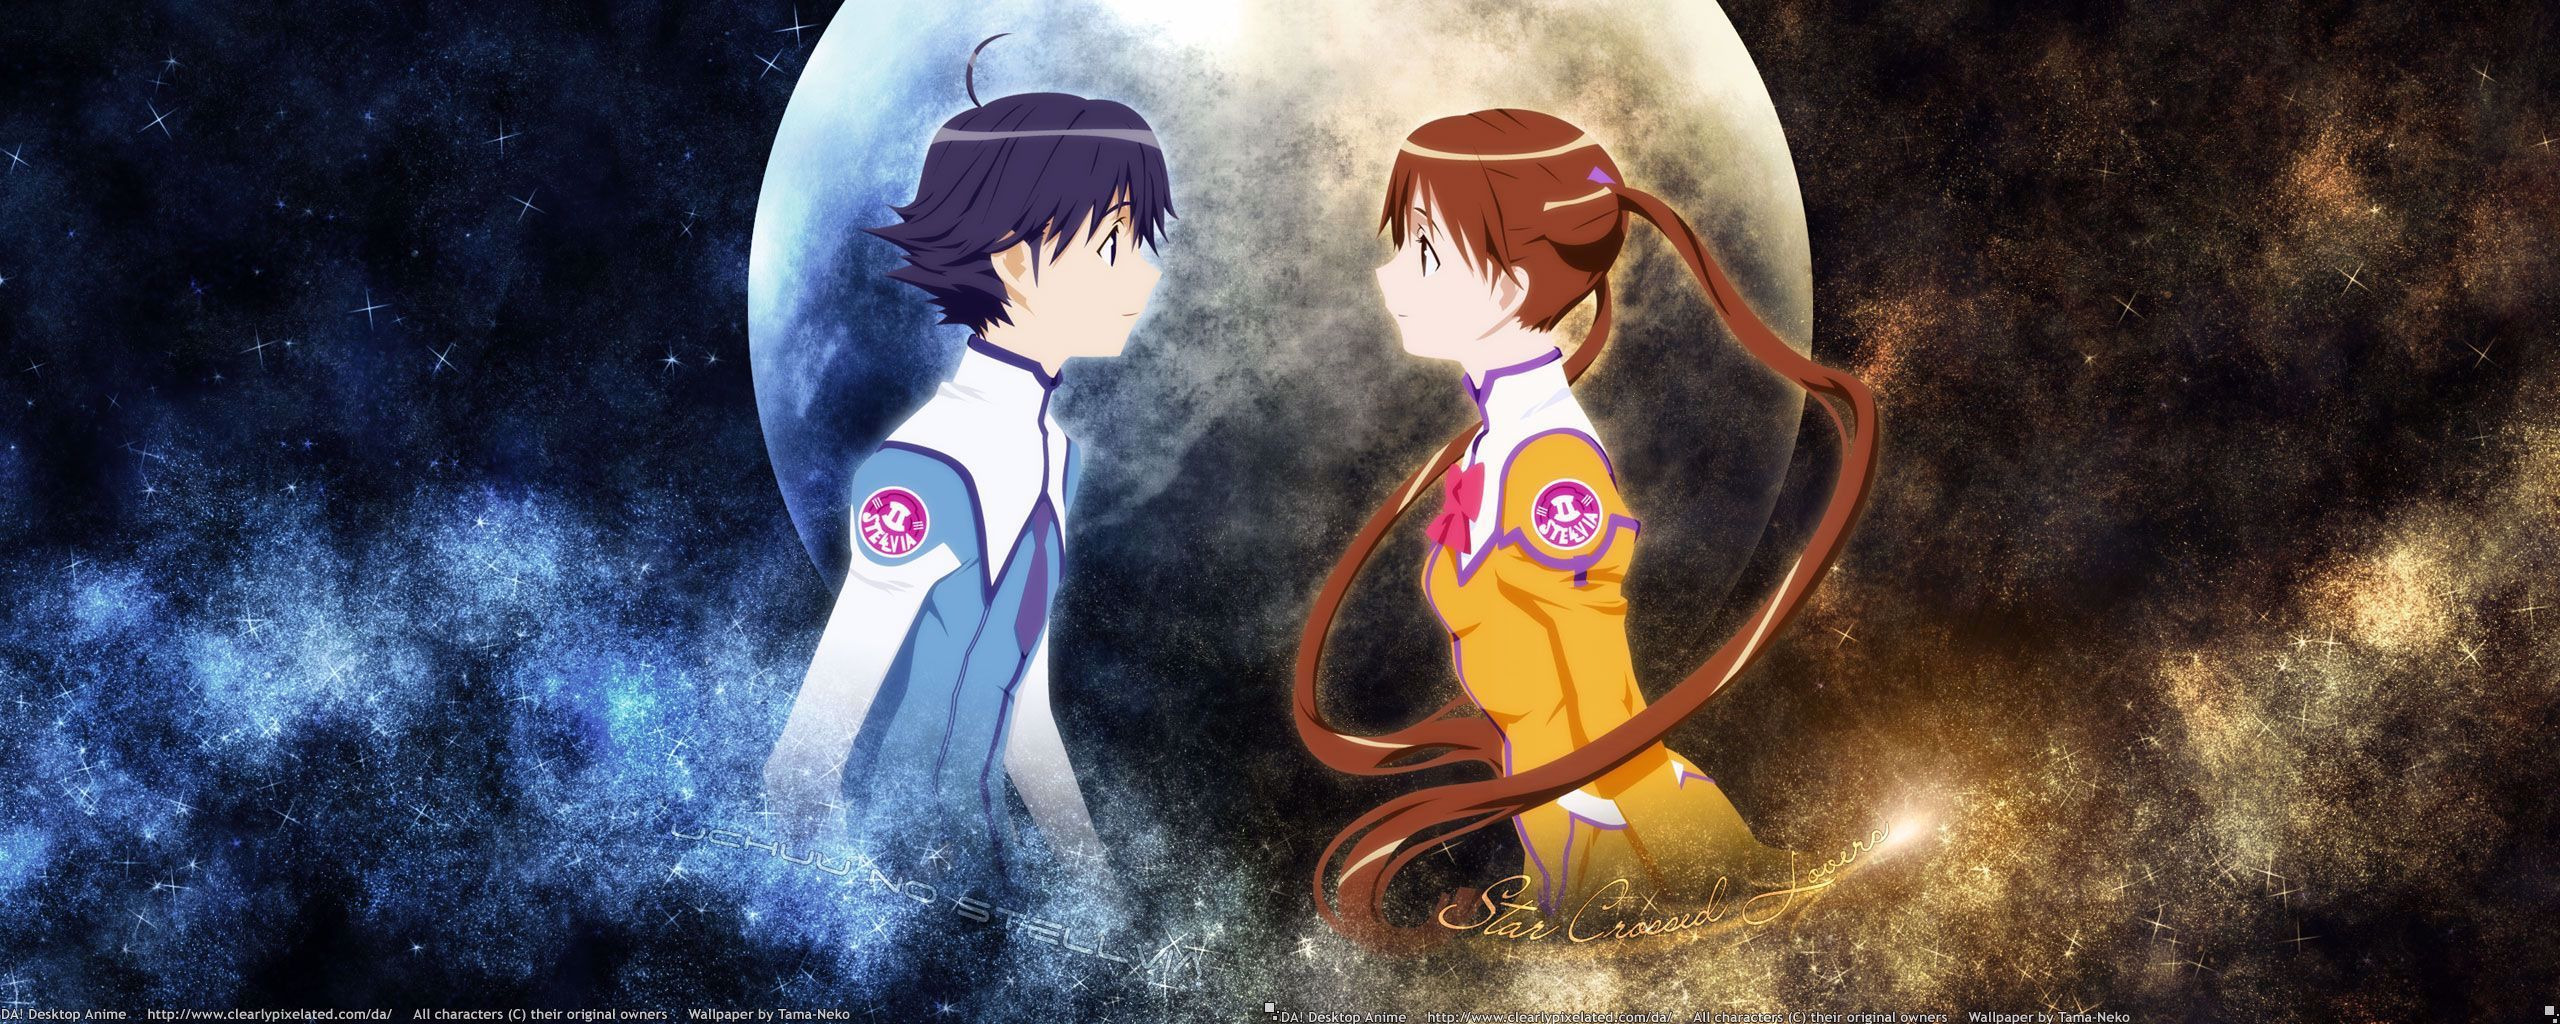 Anime Couple Uchu No Stellvia In 2020 Dual Monitor Wallpaper Anime Anime Wallpaper